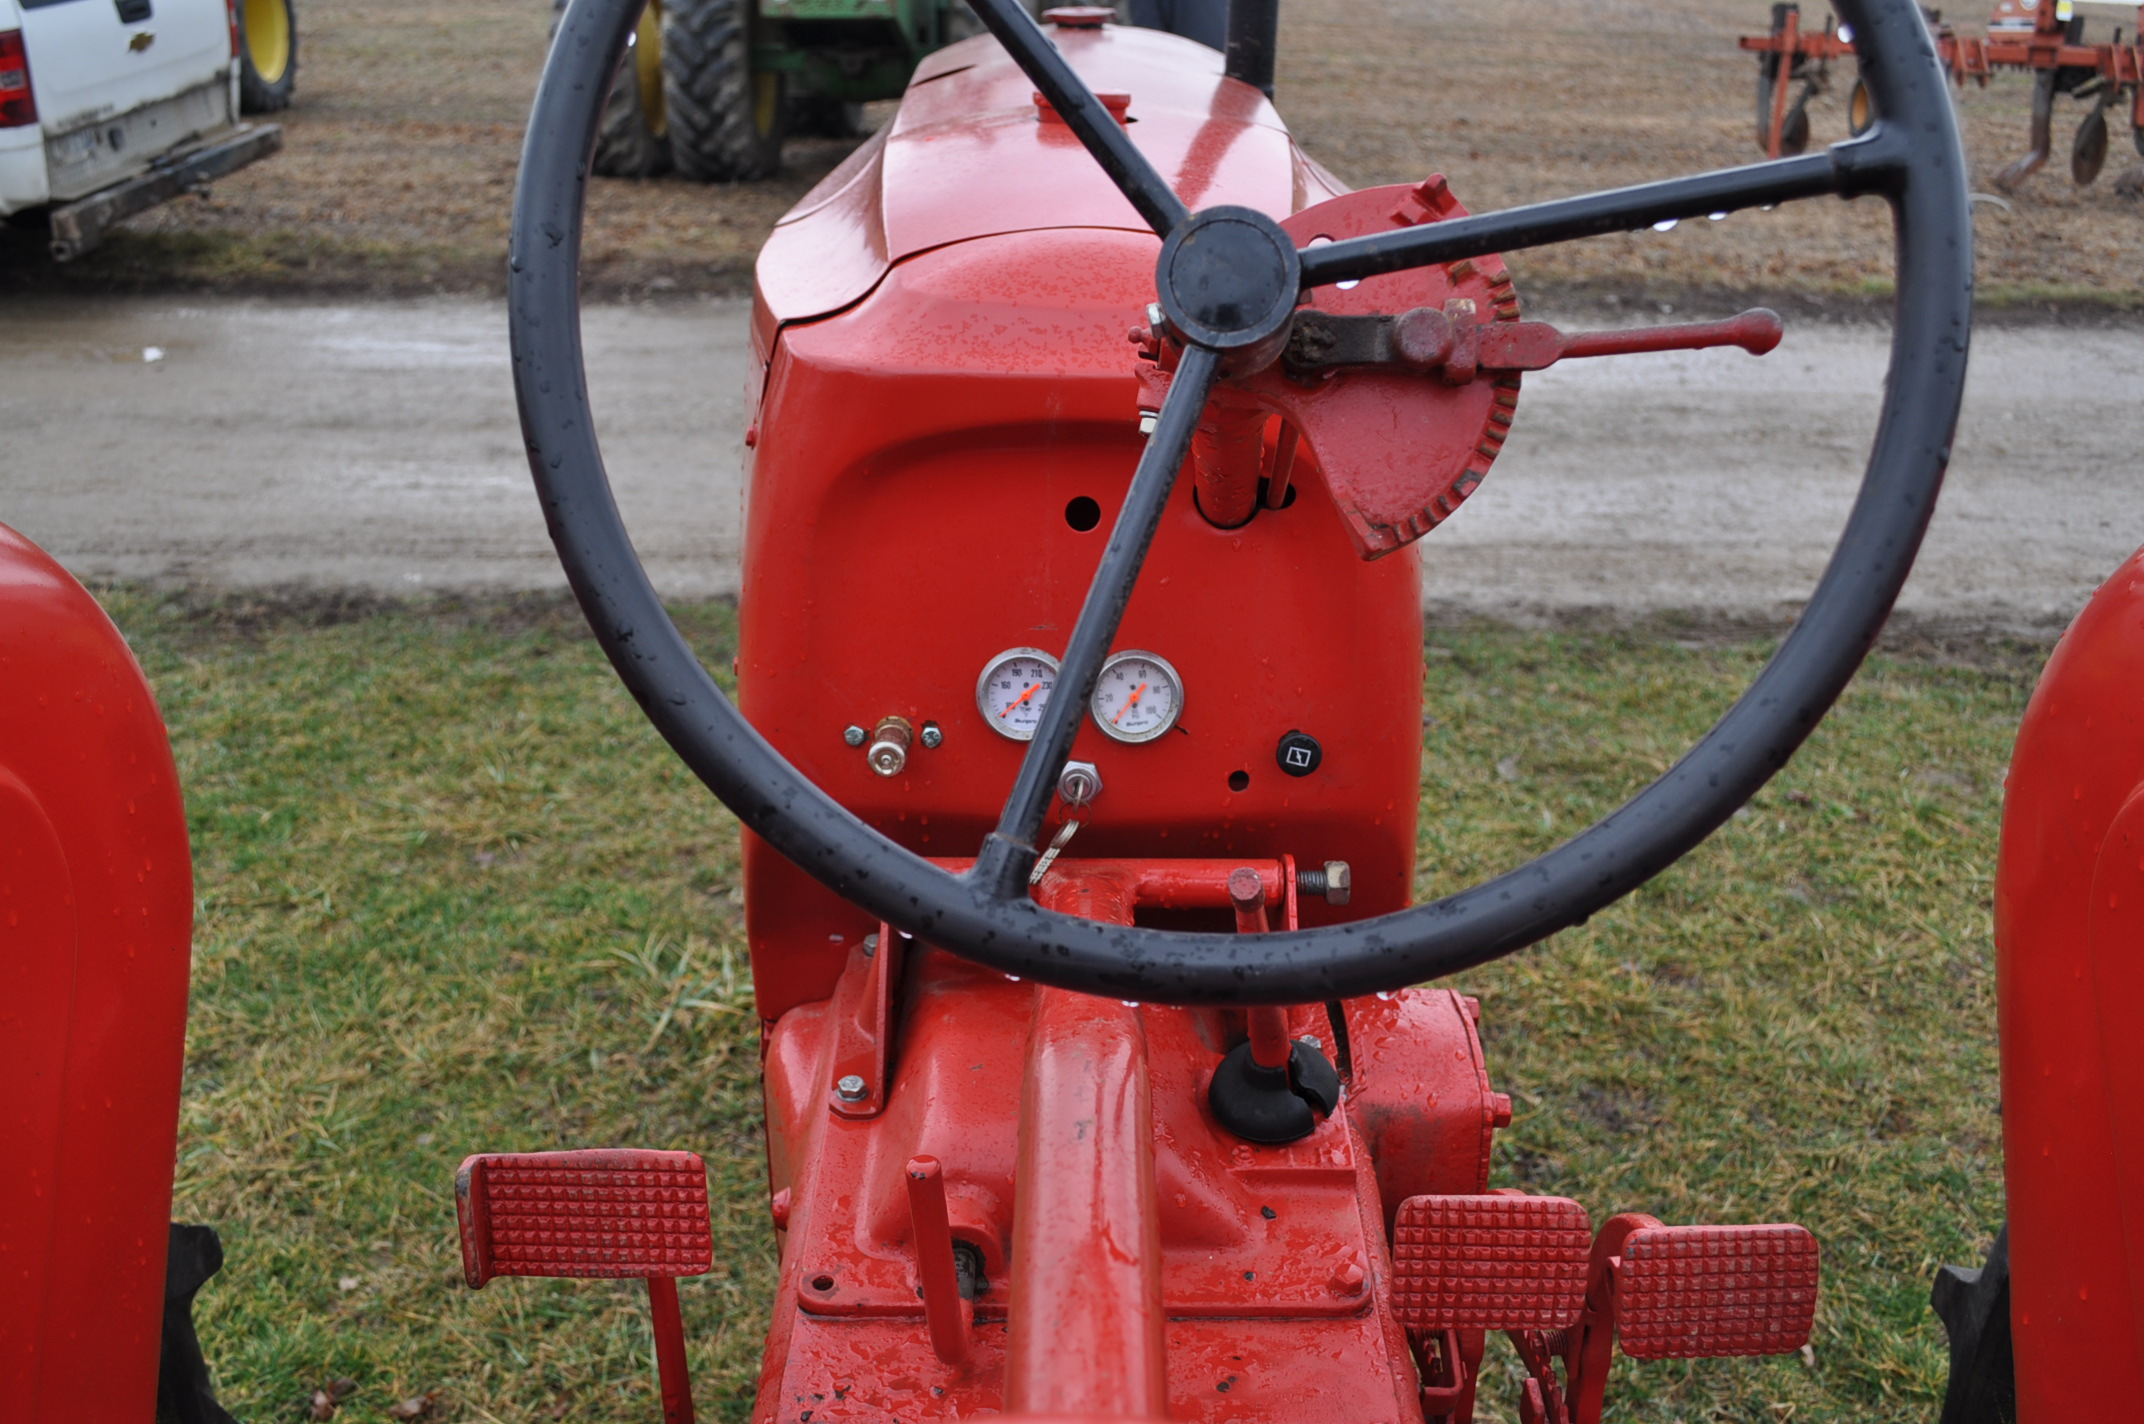 Massey Harris 101 Junior tractor, 12-38 tires, narrow front, 540 pto, SN 501605 - Image 11 of 12